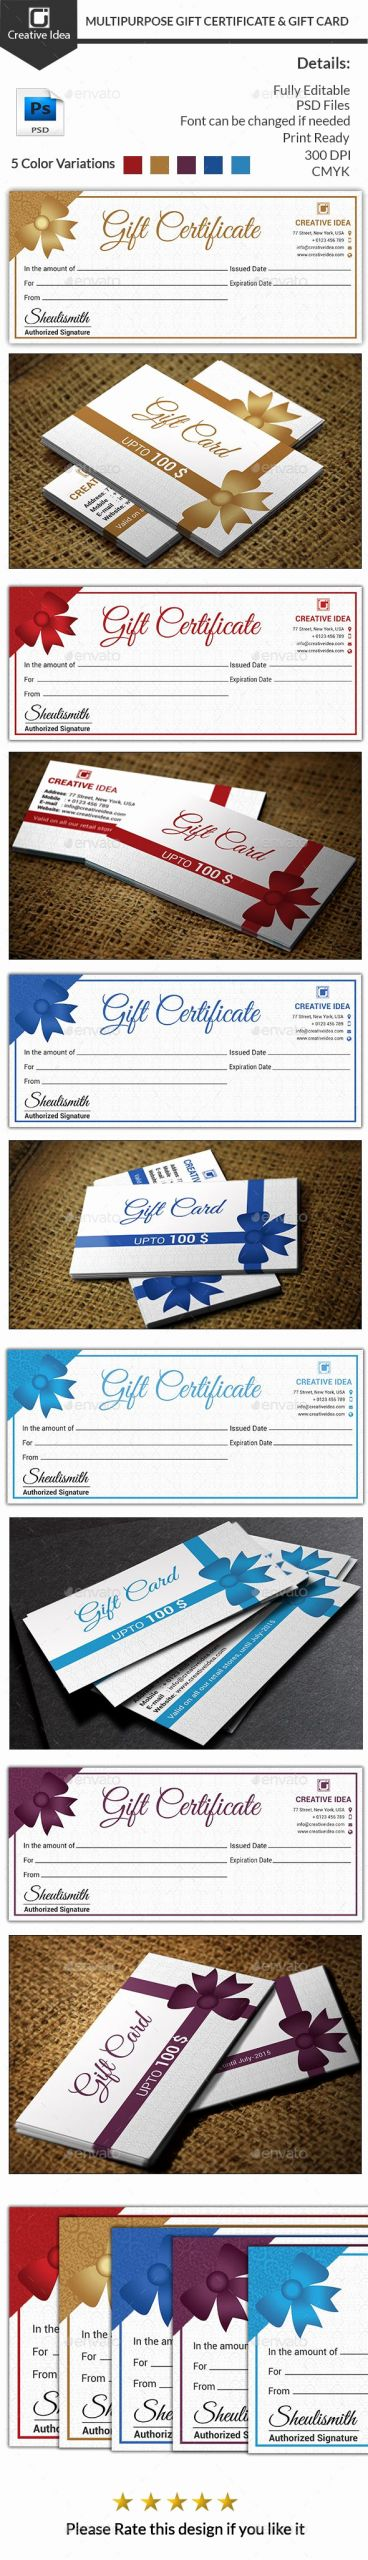 Auction Item Certificate Template New Best 25 Gift Certificates Ideas On Pinterest